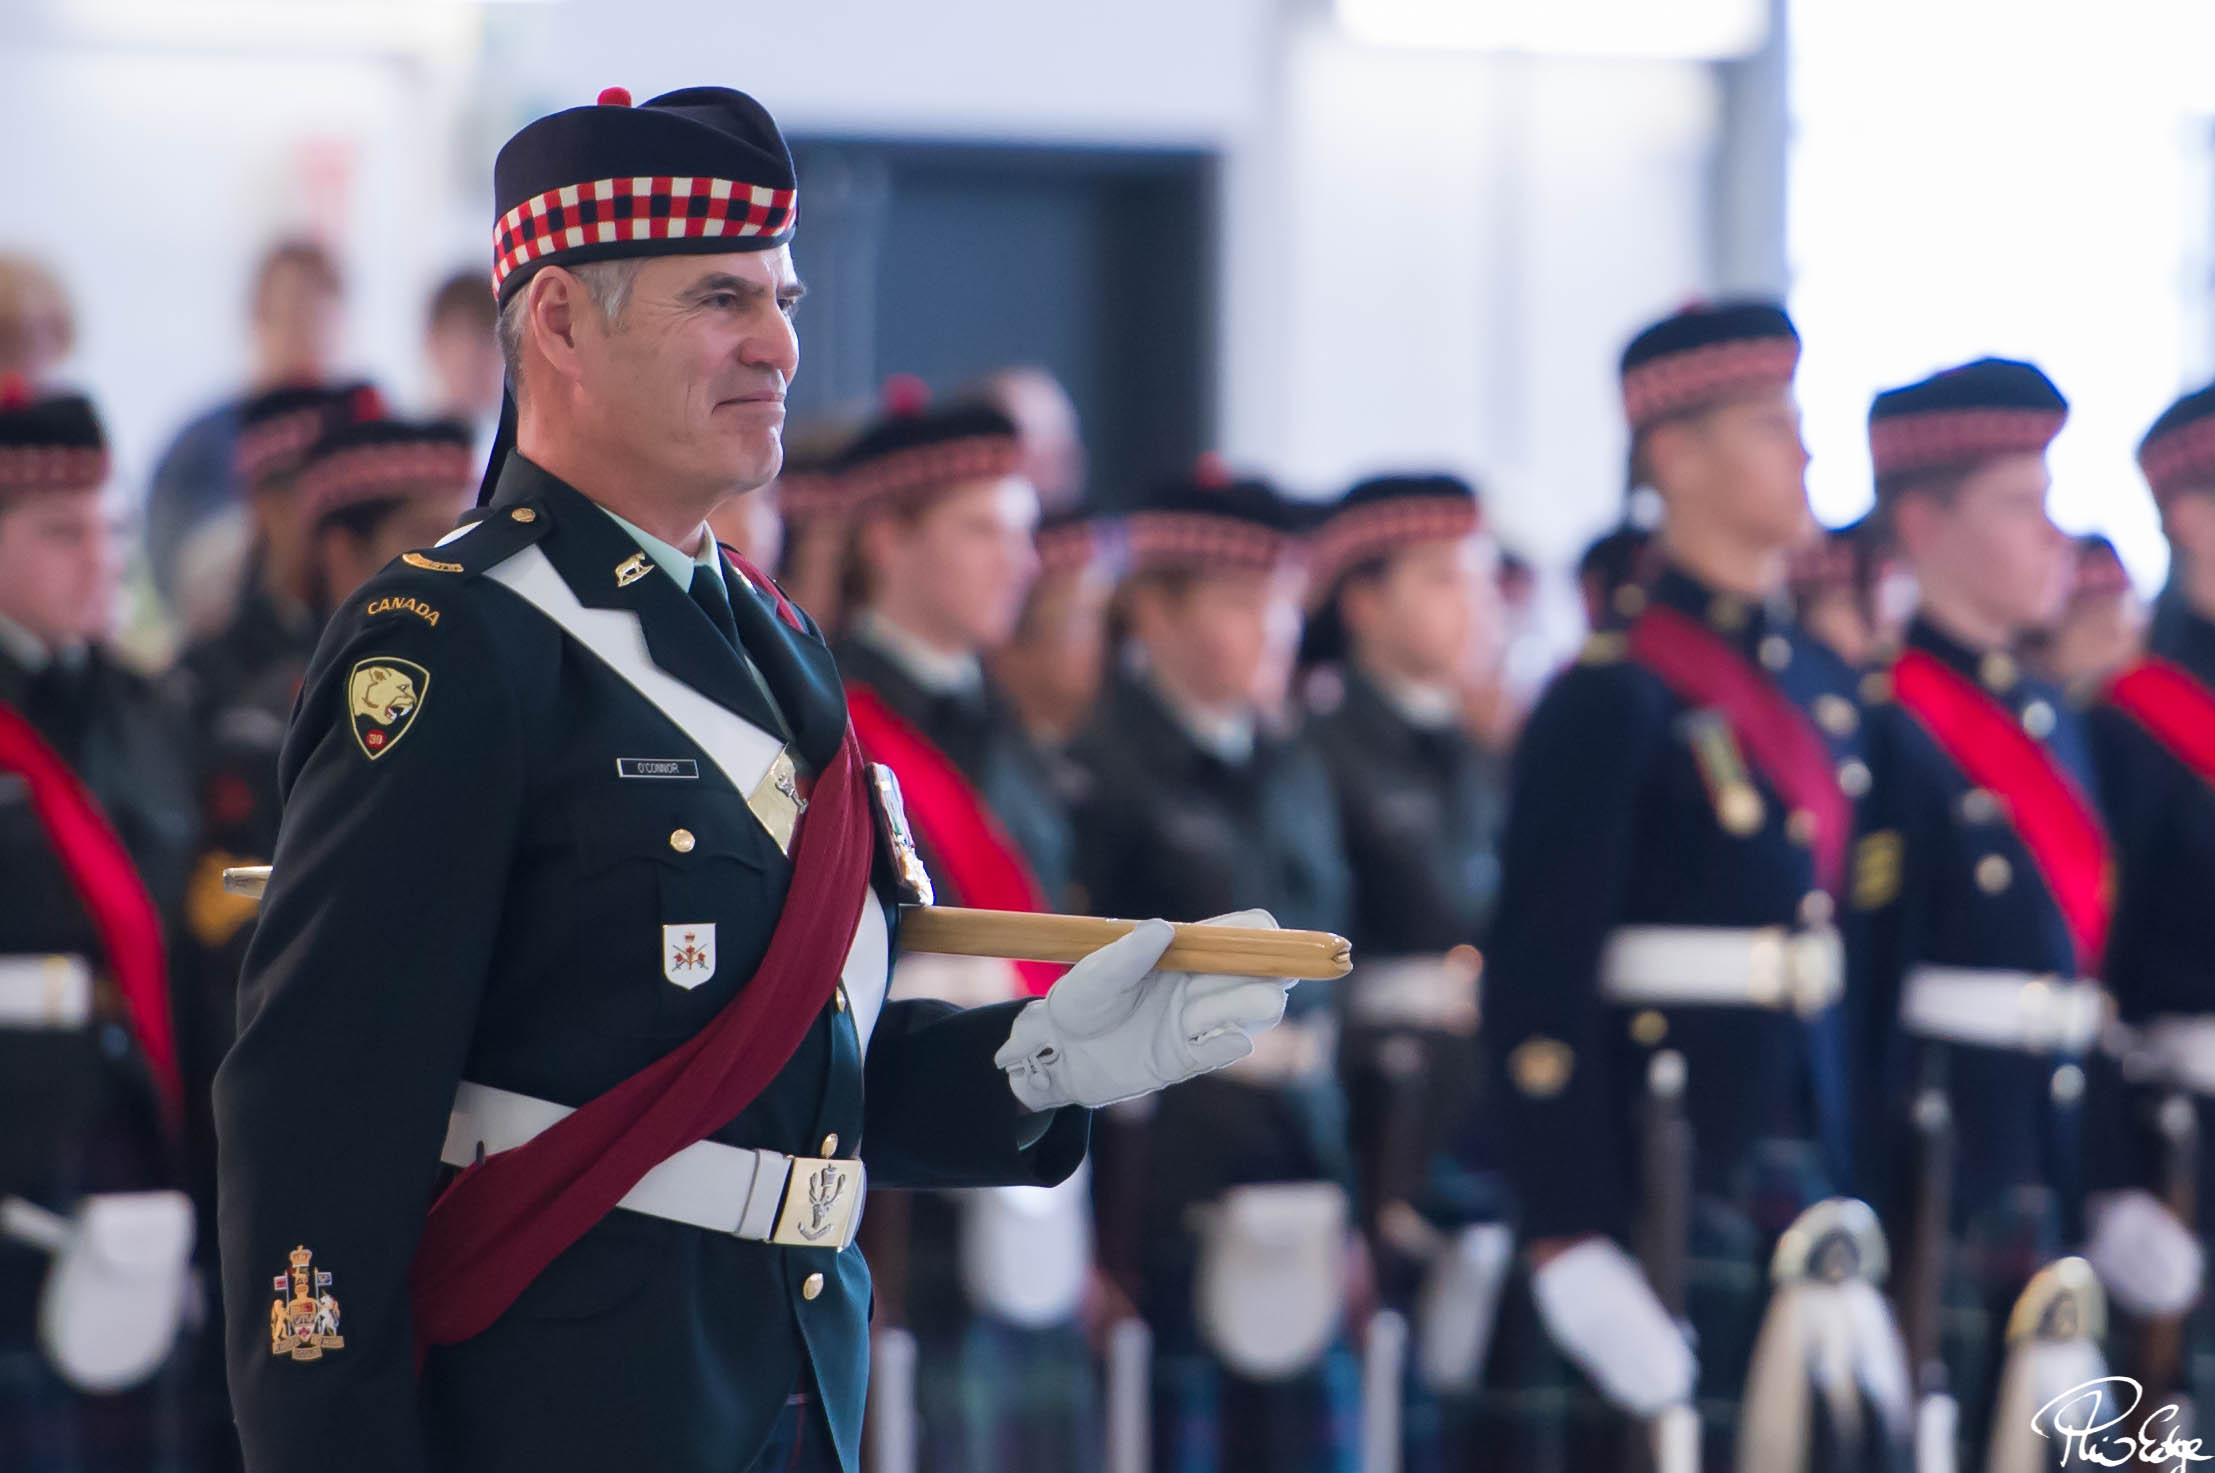 Seaforth Highlanders of Canada Homecoming 24 Sept 16 No-289.jpg